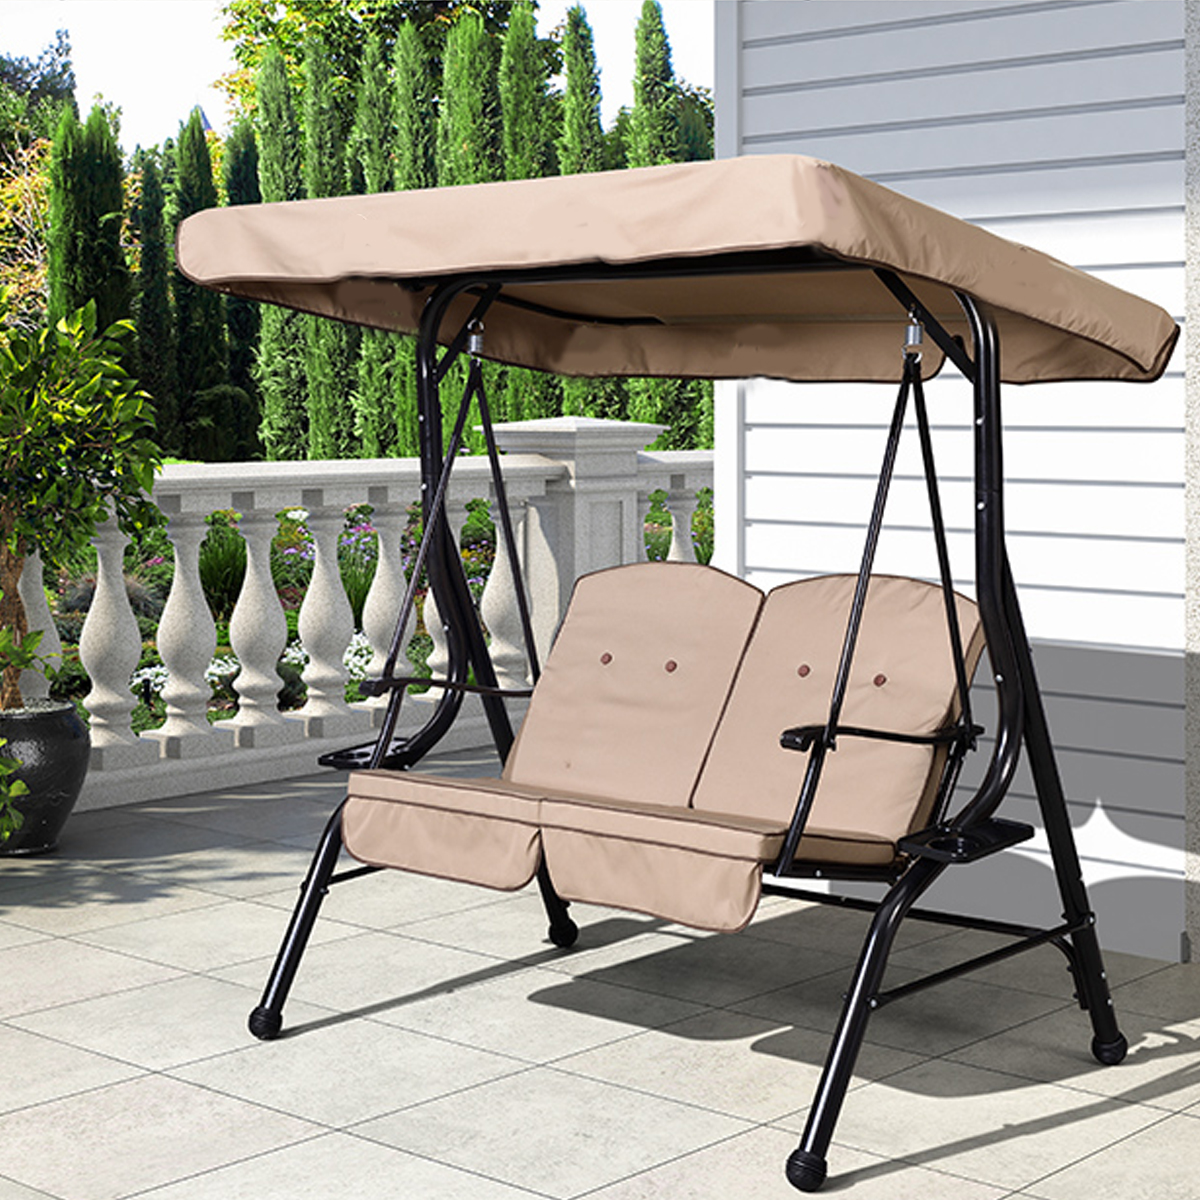 Outdoor 3 Seater Garden Swing Chair Replacement Canopy